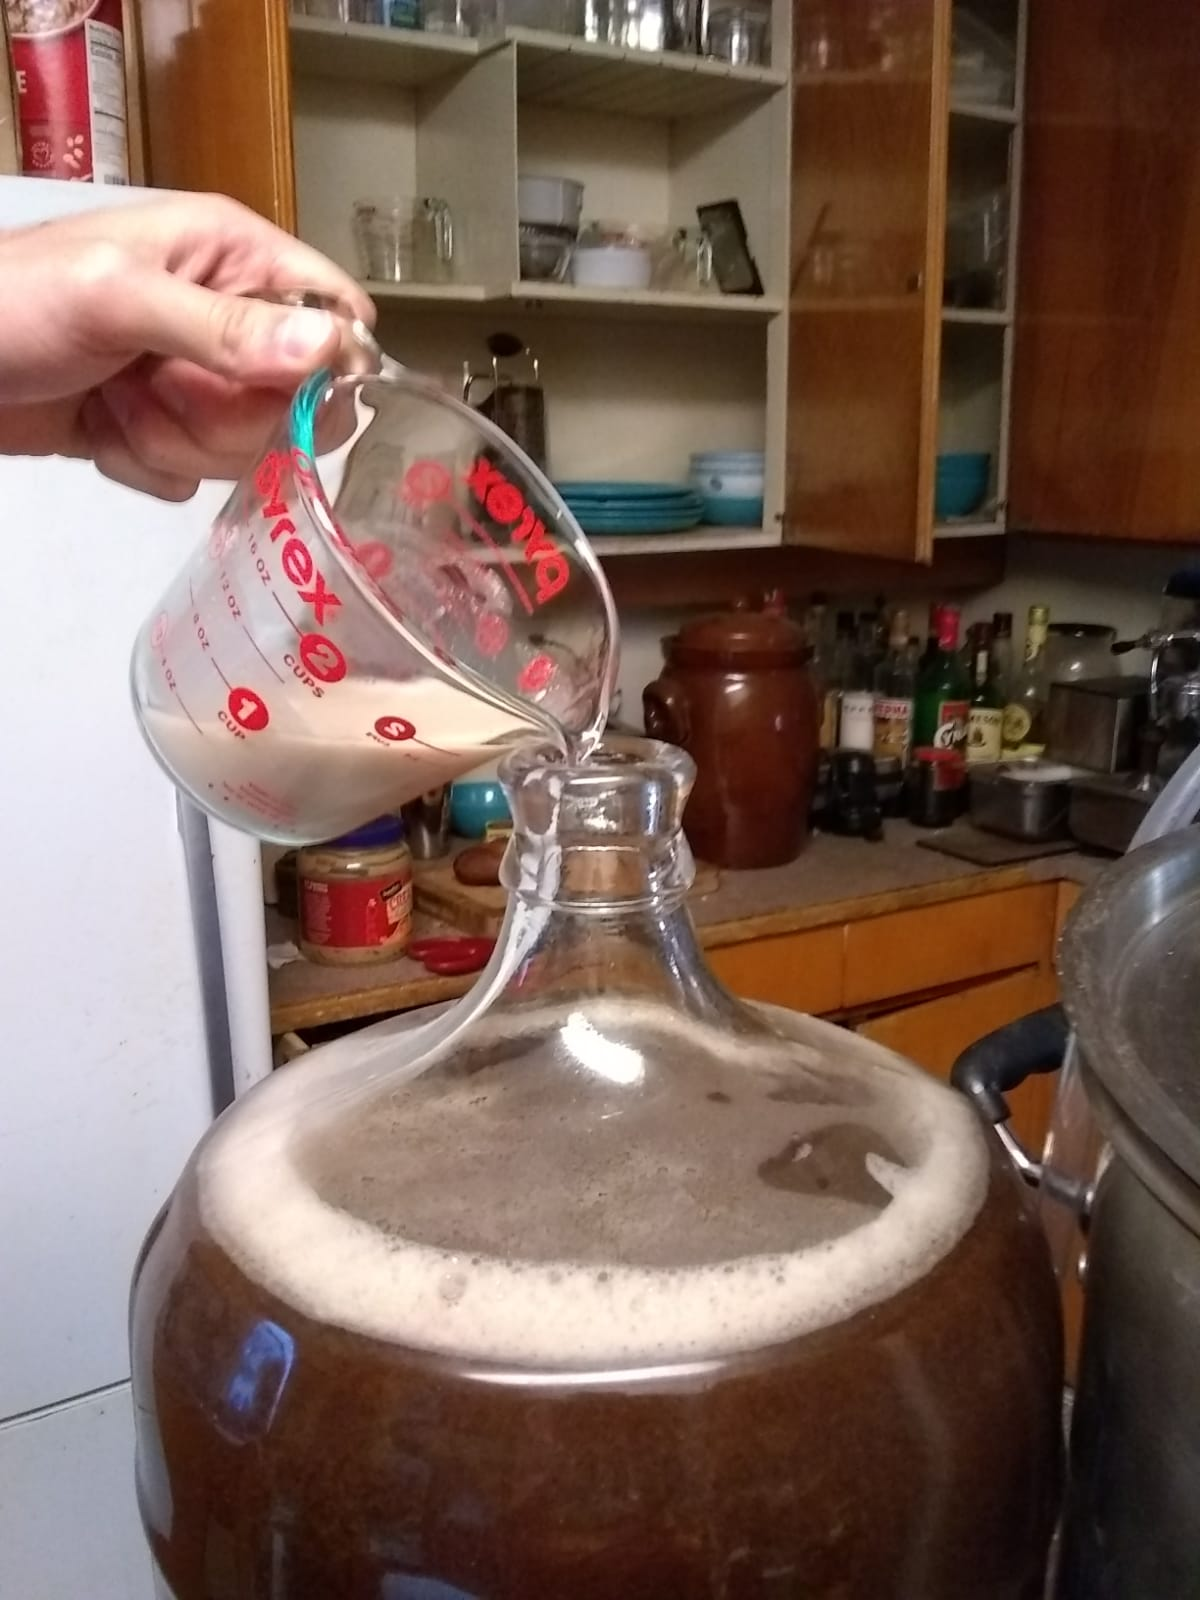 A hand pouring a measuring cup with yeast into the fermentator.